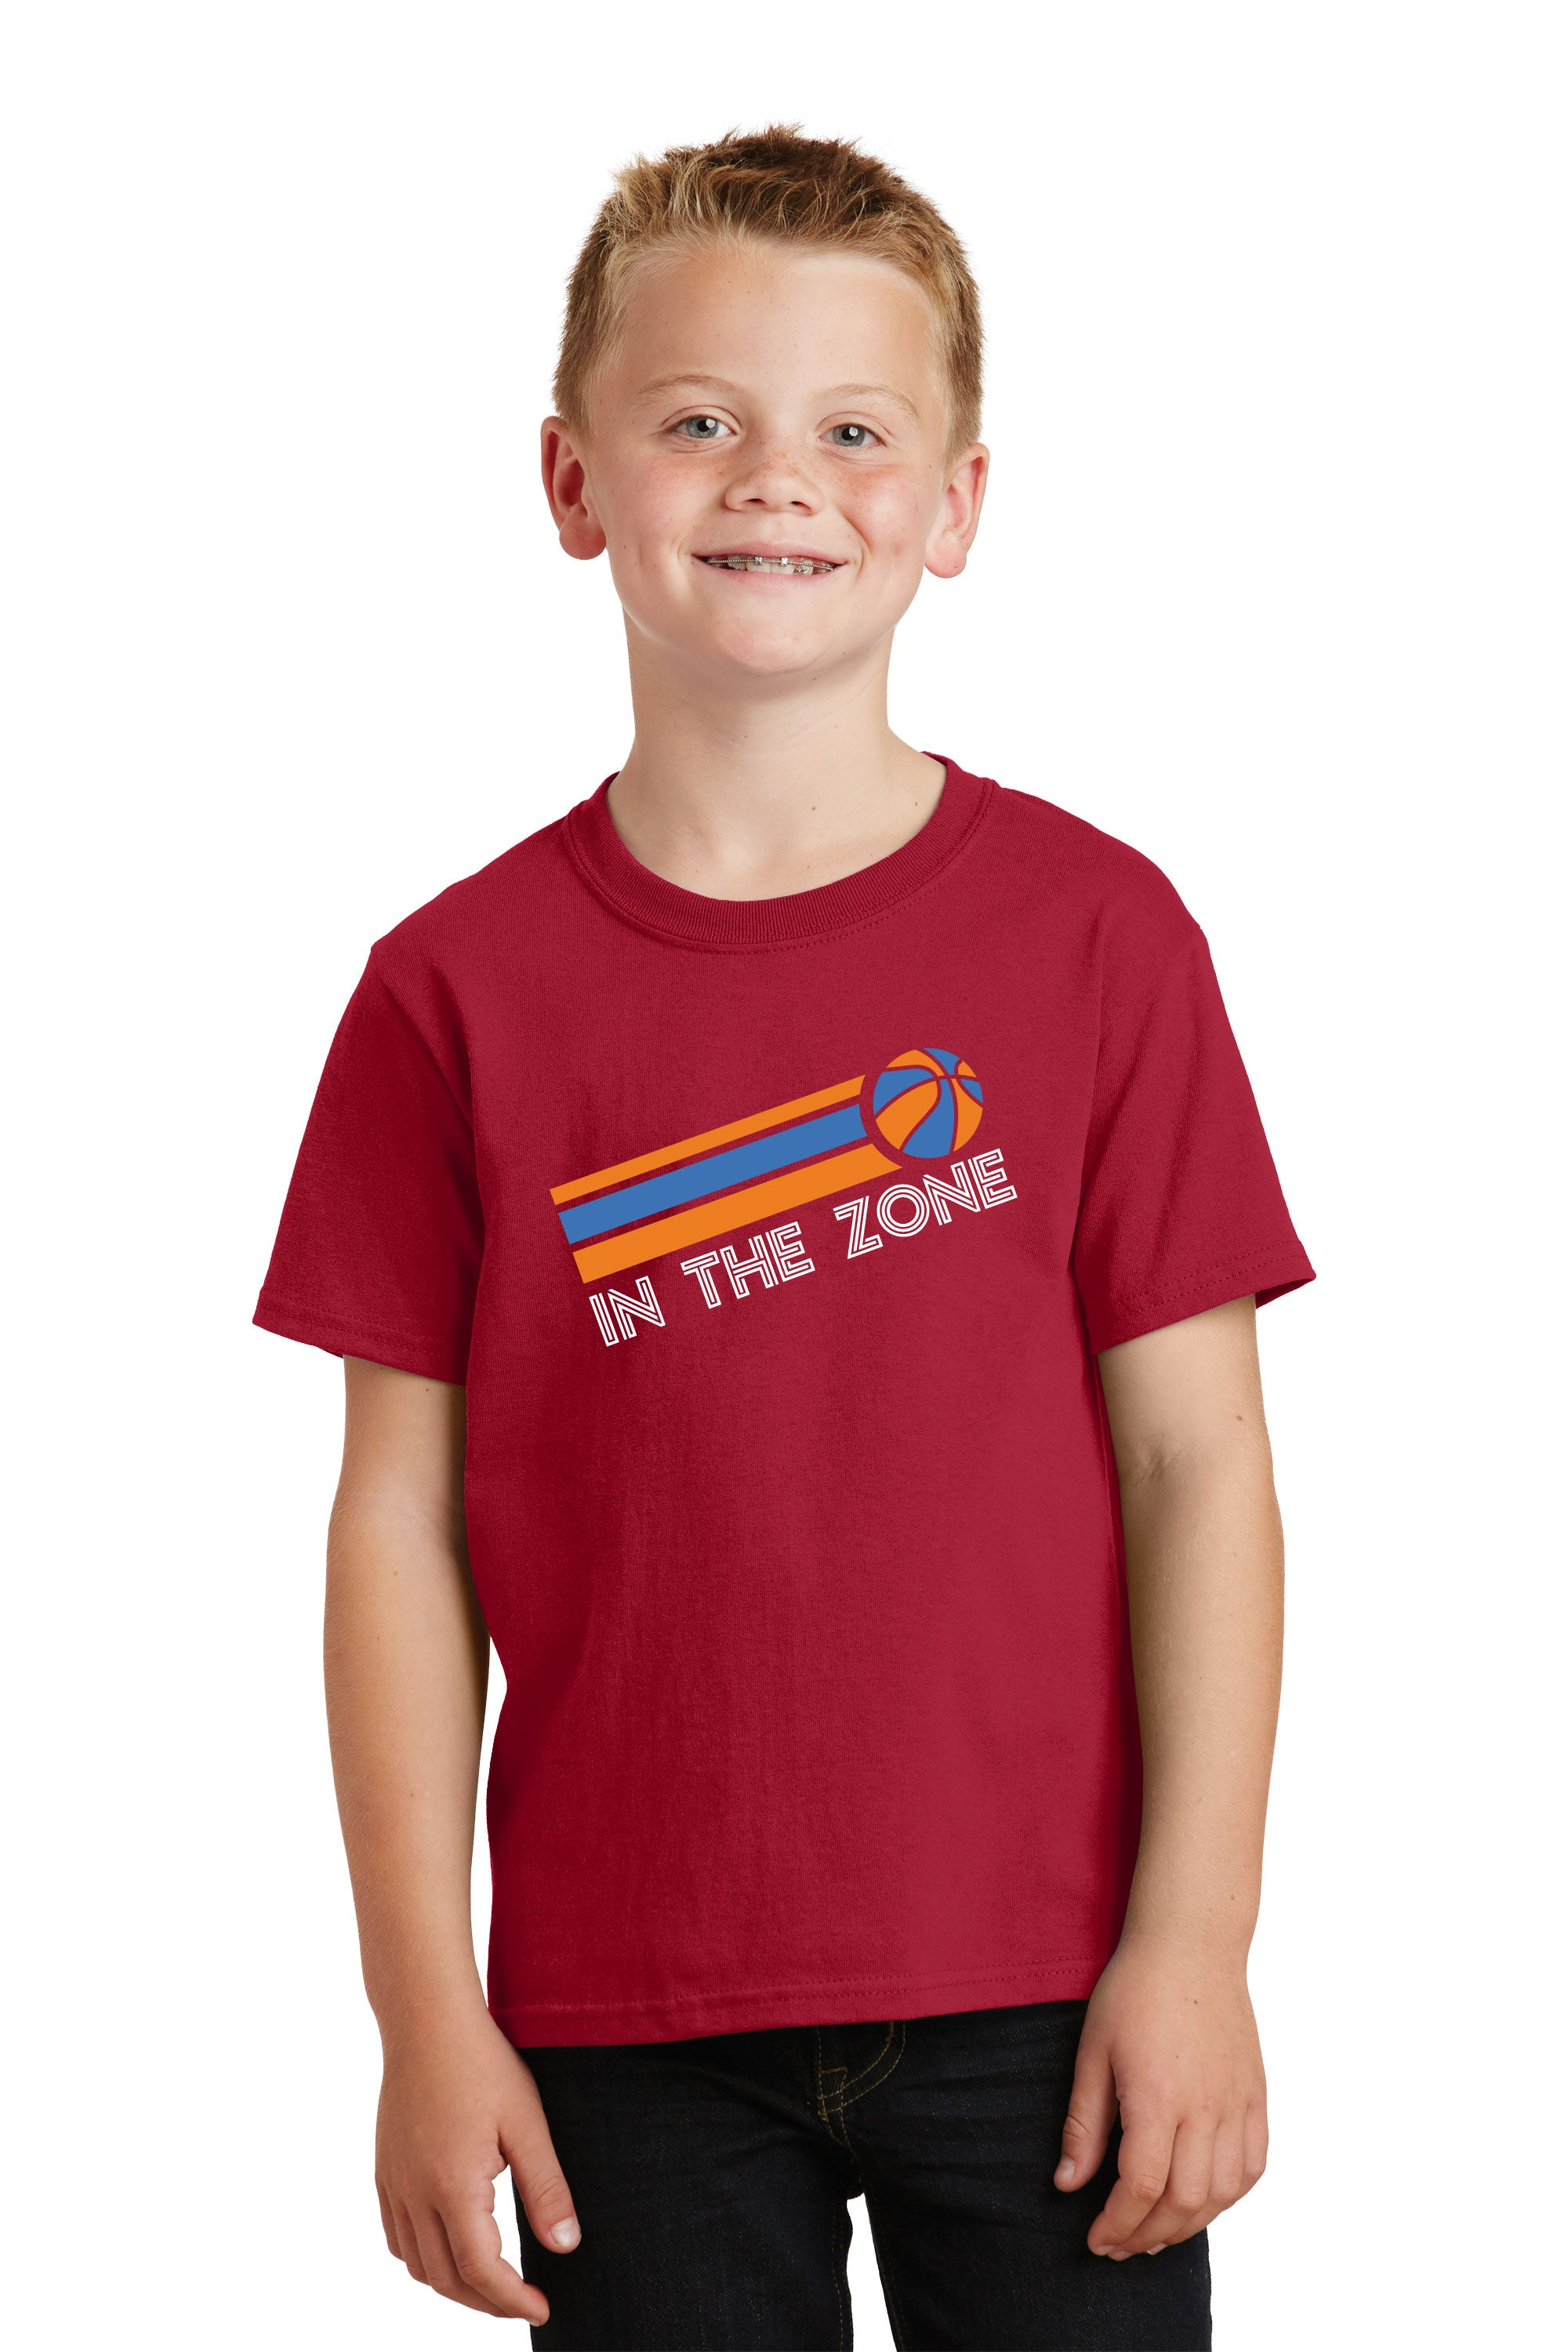 IN THE ZONE - YOUTH TEE